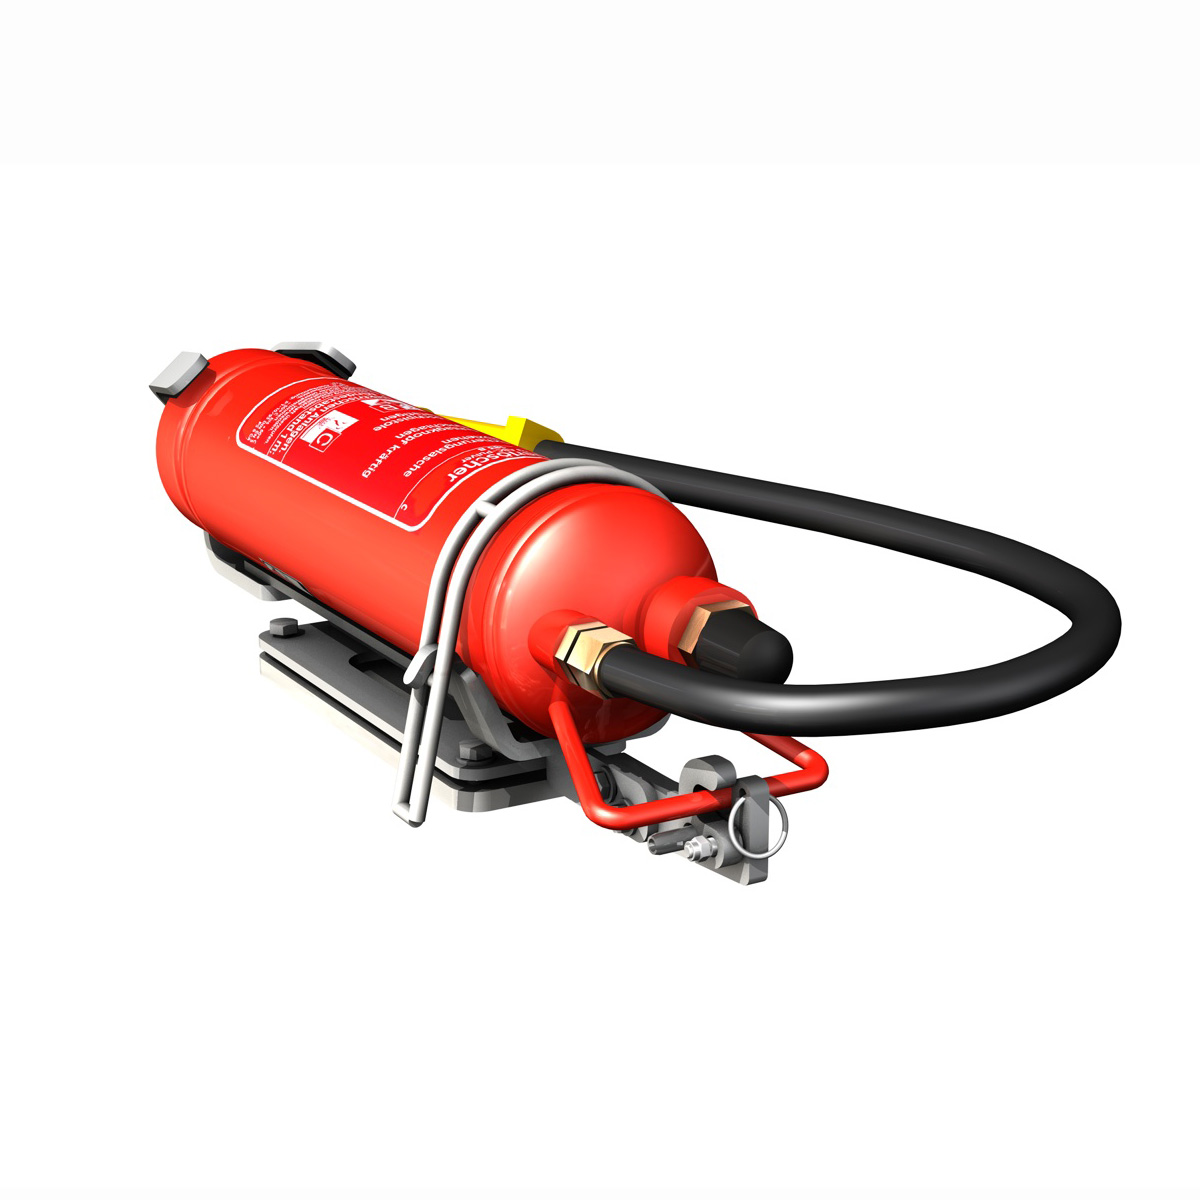 fire extinguisher with vehicle mounting 3d model 3ds fbx c4d lwo obj 188493